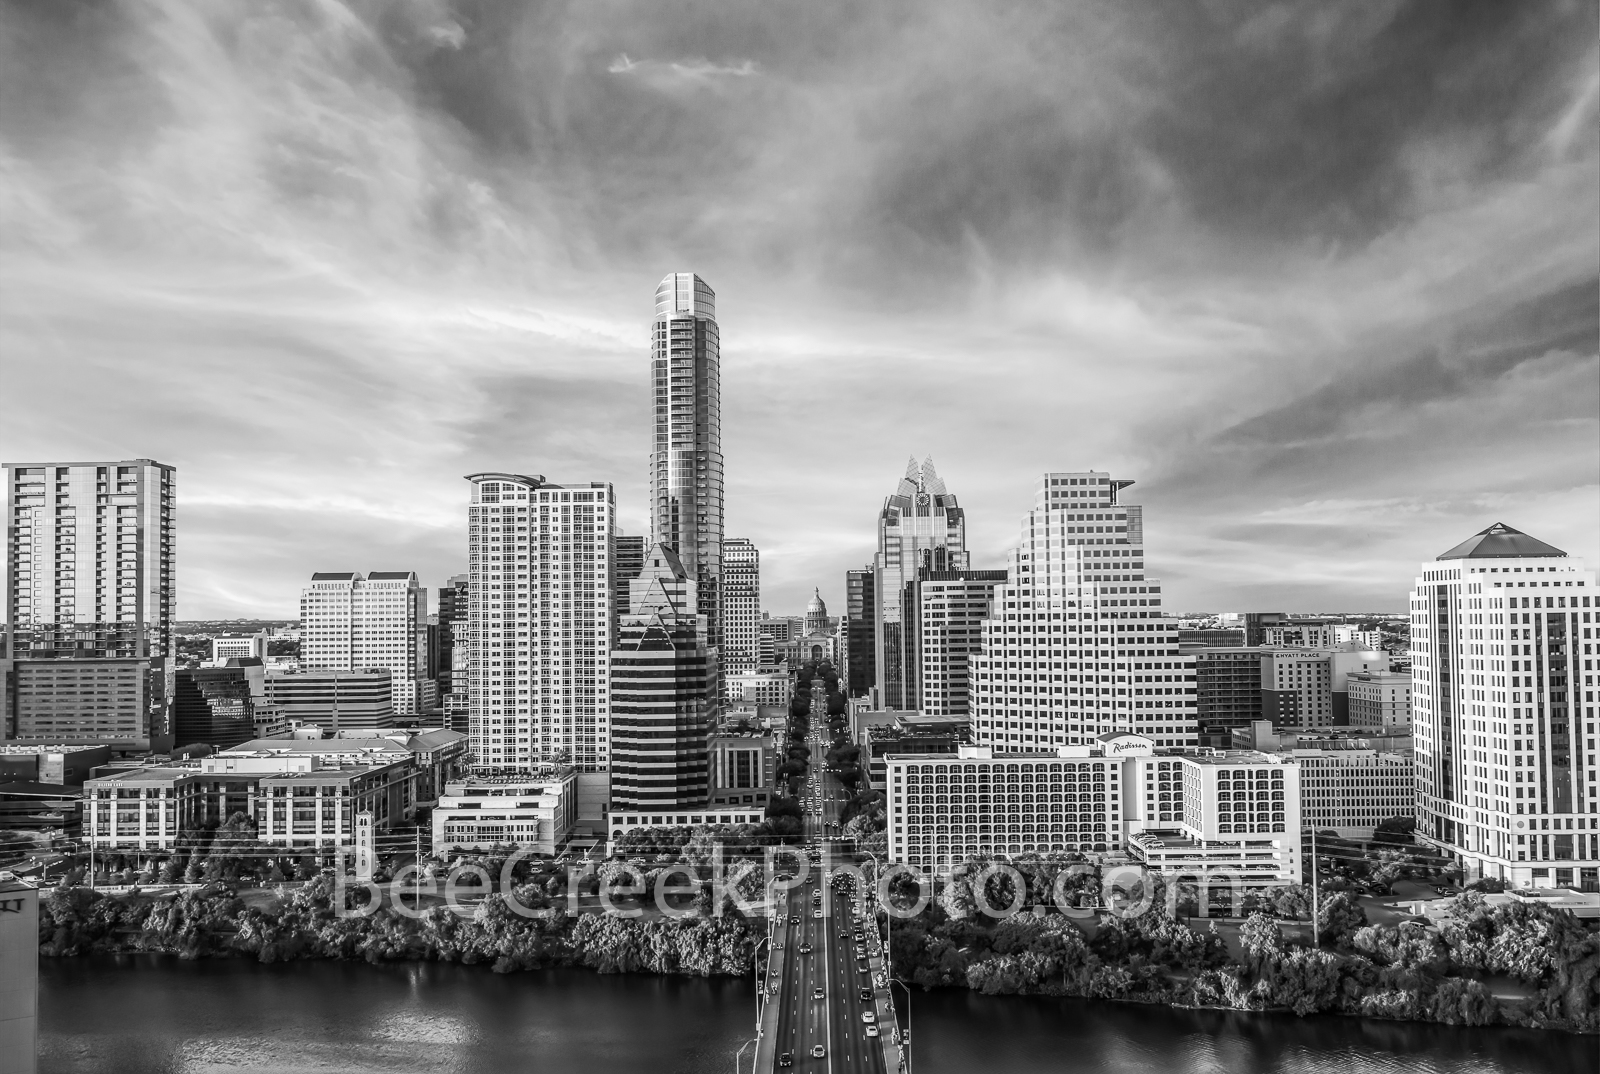 Austin skyline, aerial, capitol, capital, downtown, skyline,  city, cityscape, Congress Ave, high-rise, buildings, Frost, Austonian, One Congress Plaza, Radisson, One Congress Plaza, Ashton Condos, On, photo